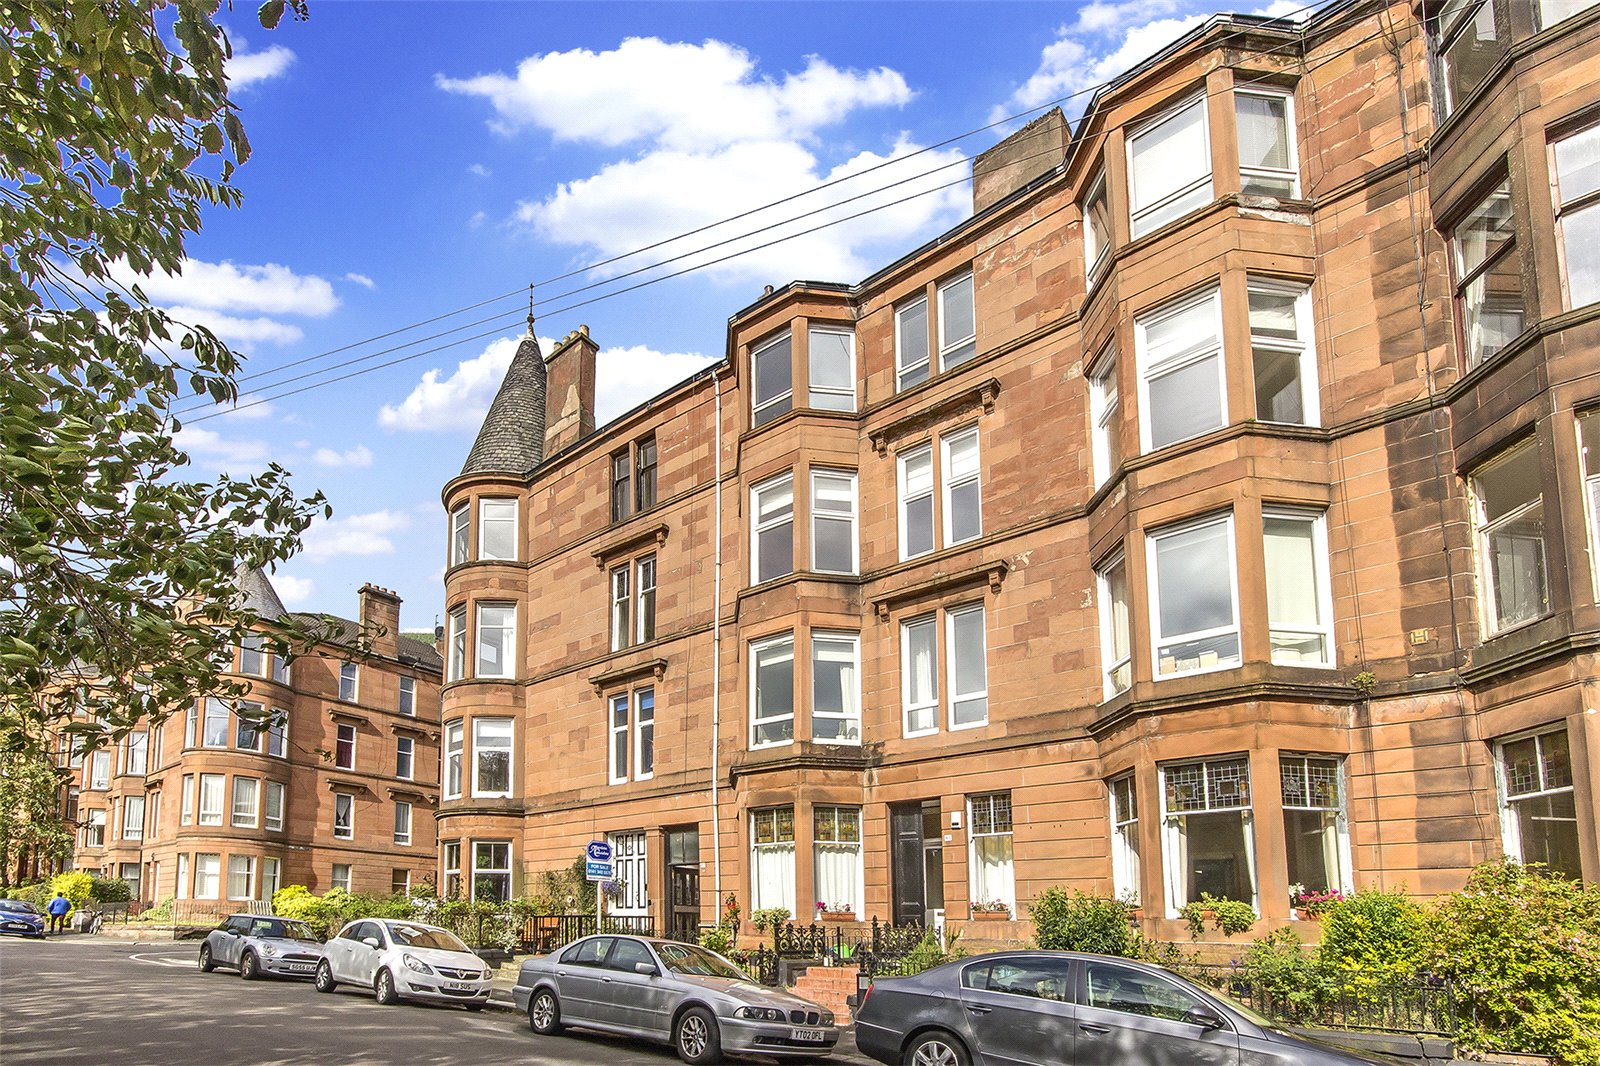 Glasgow Property of the Week: 3/1, 90 Wilton Street